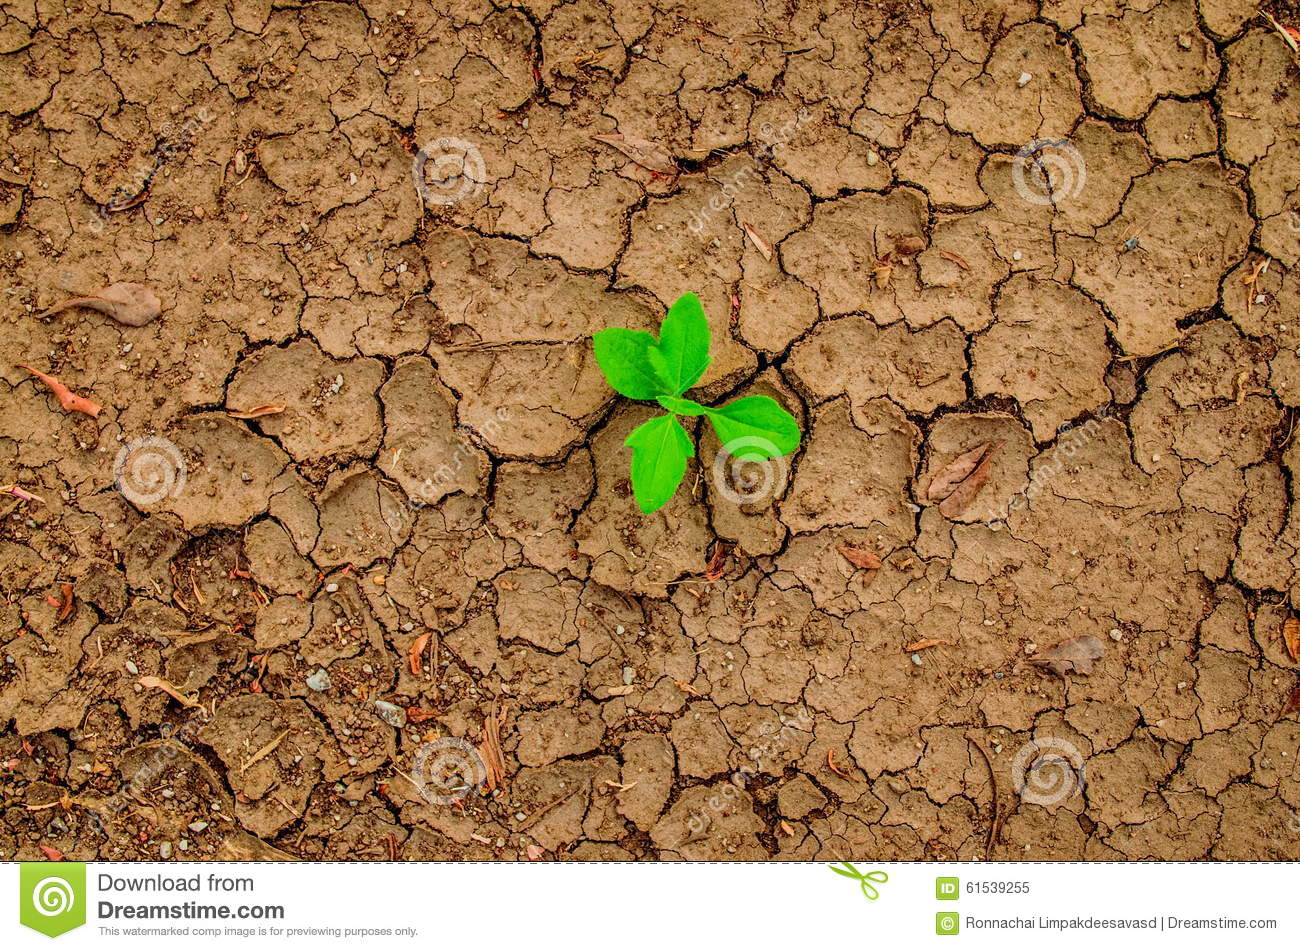 Plant growing through the ground, hope concept